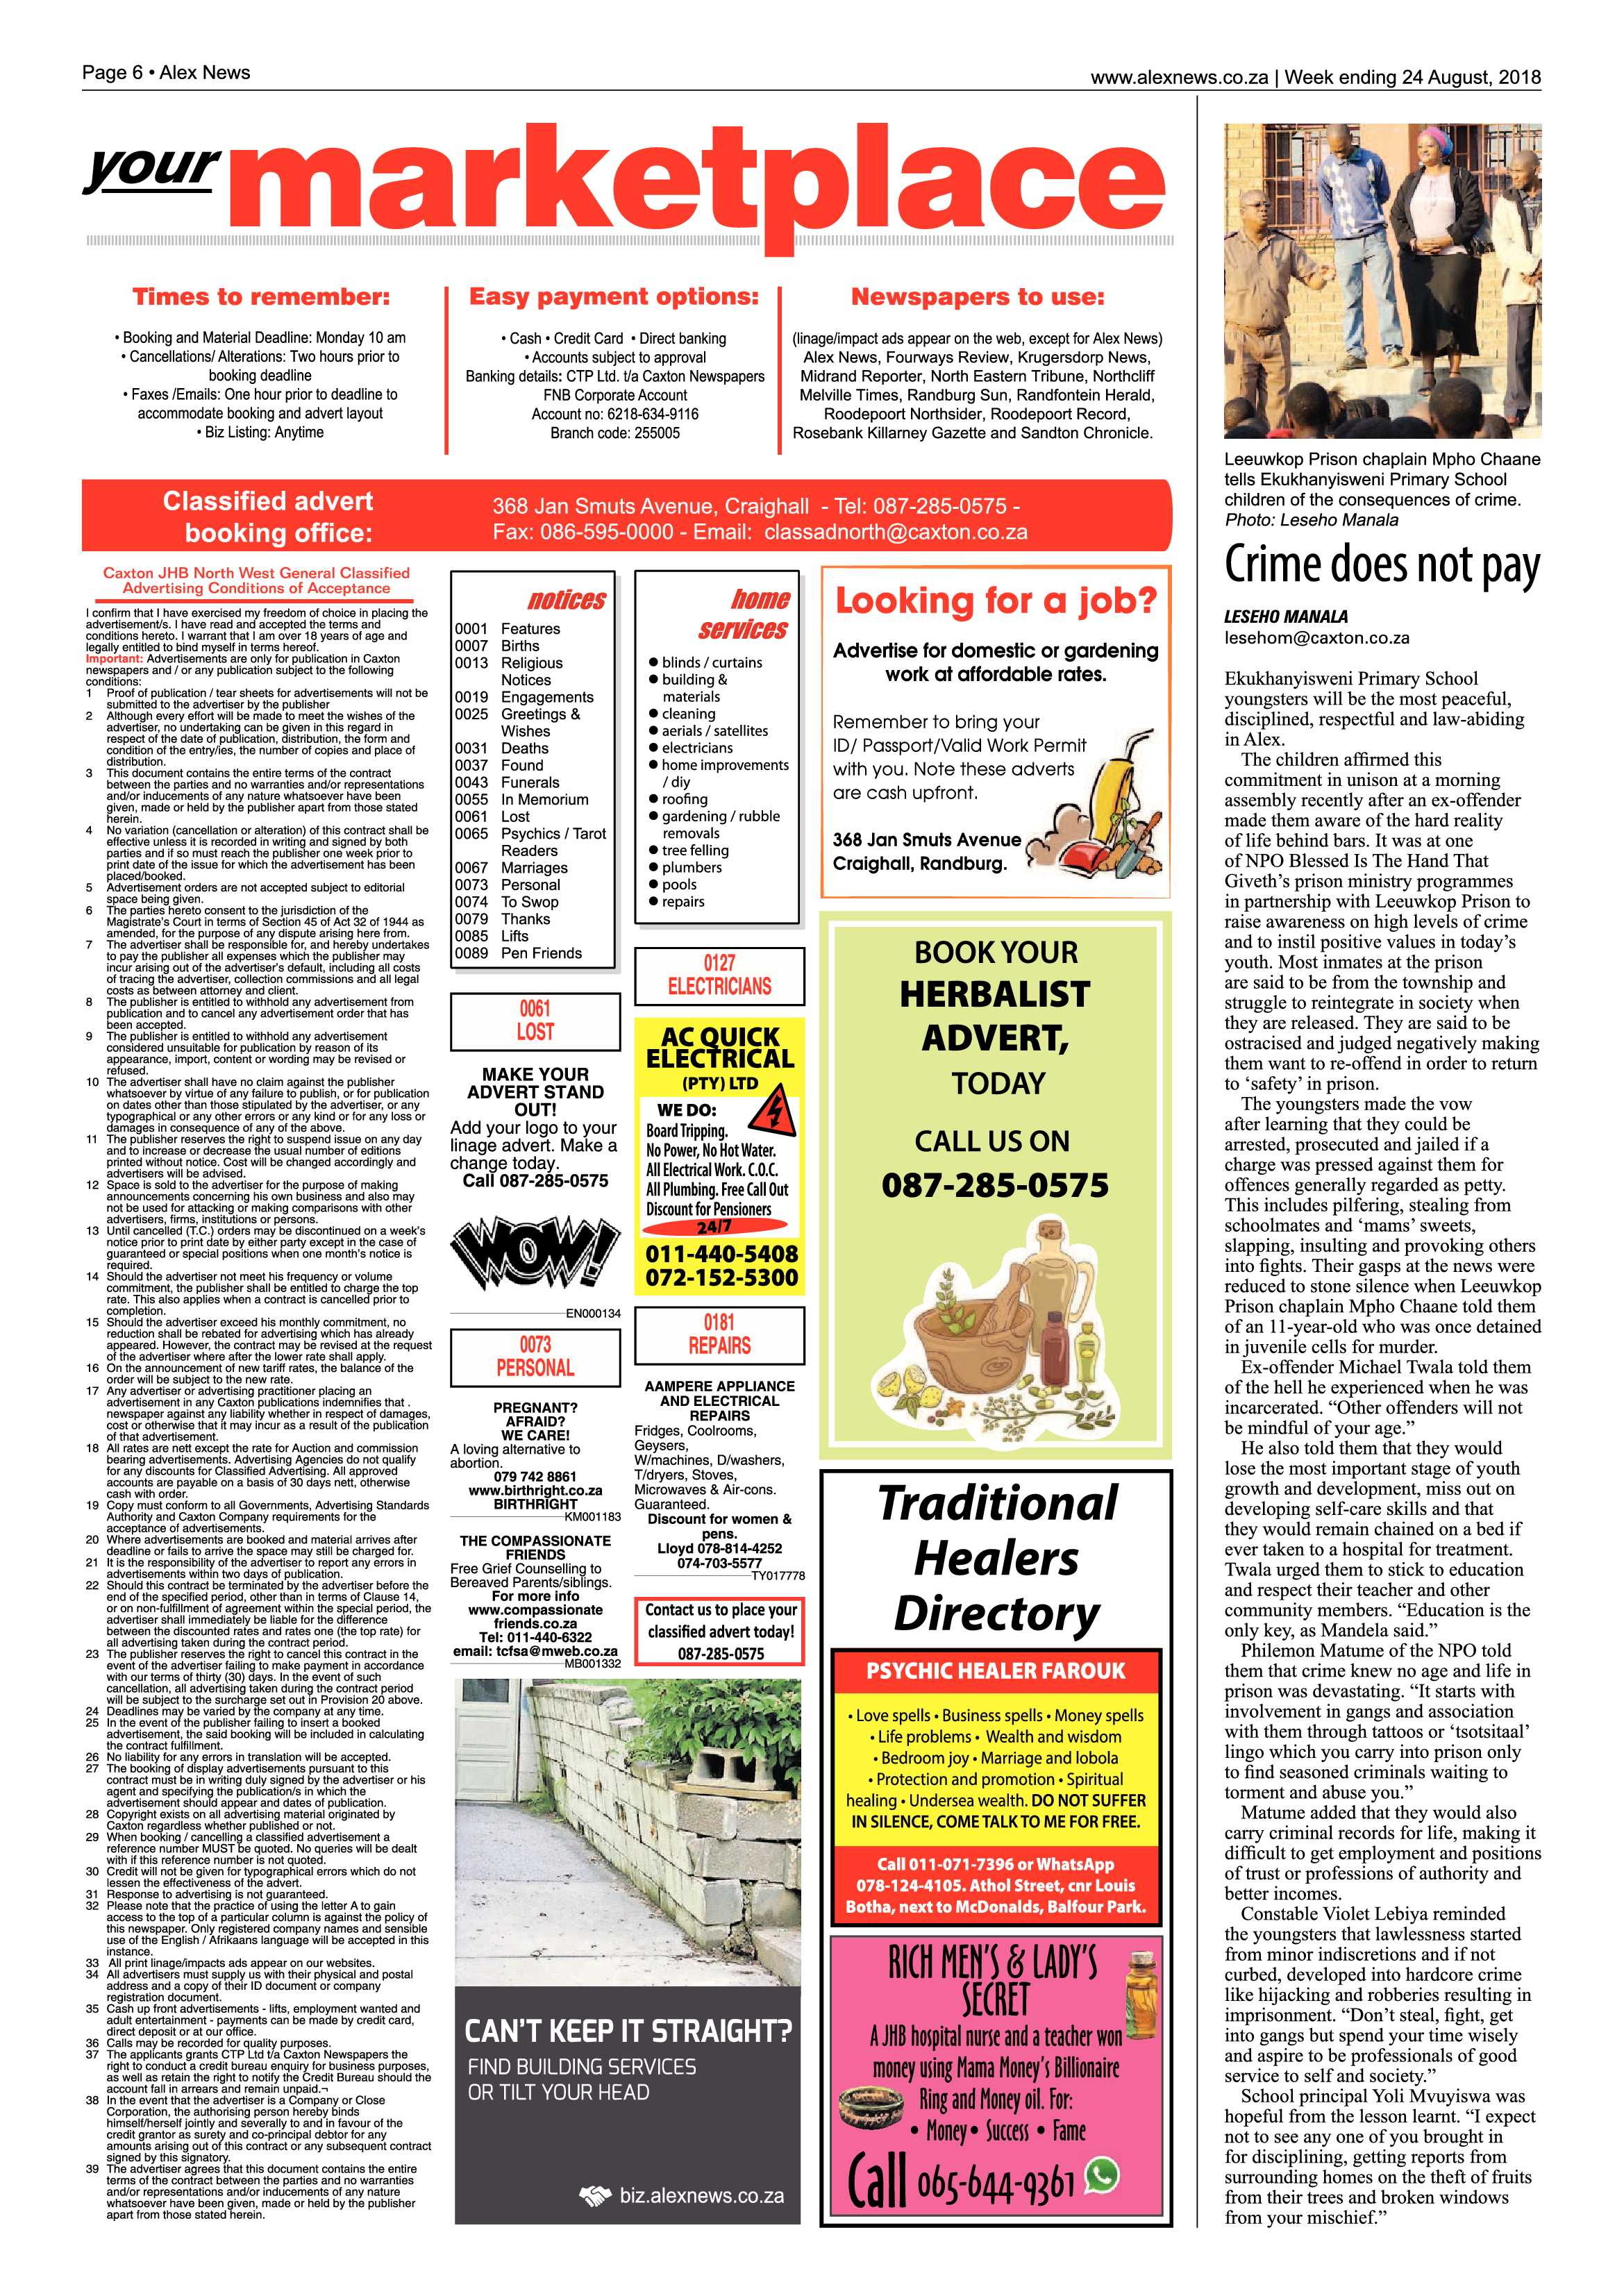 alex-24-august-2018-epapers-page-6